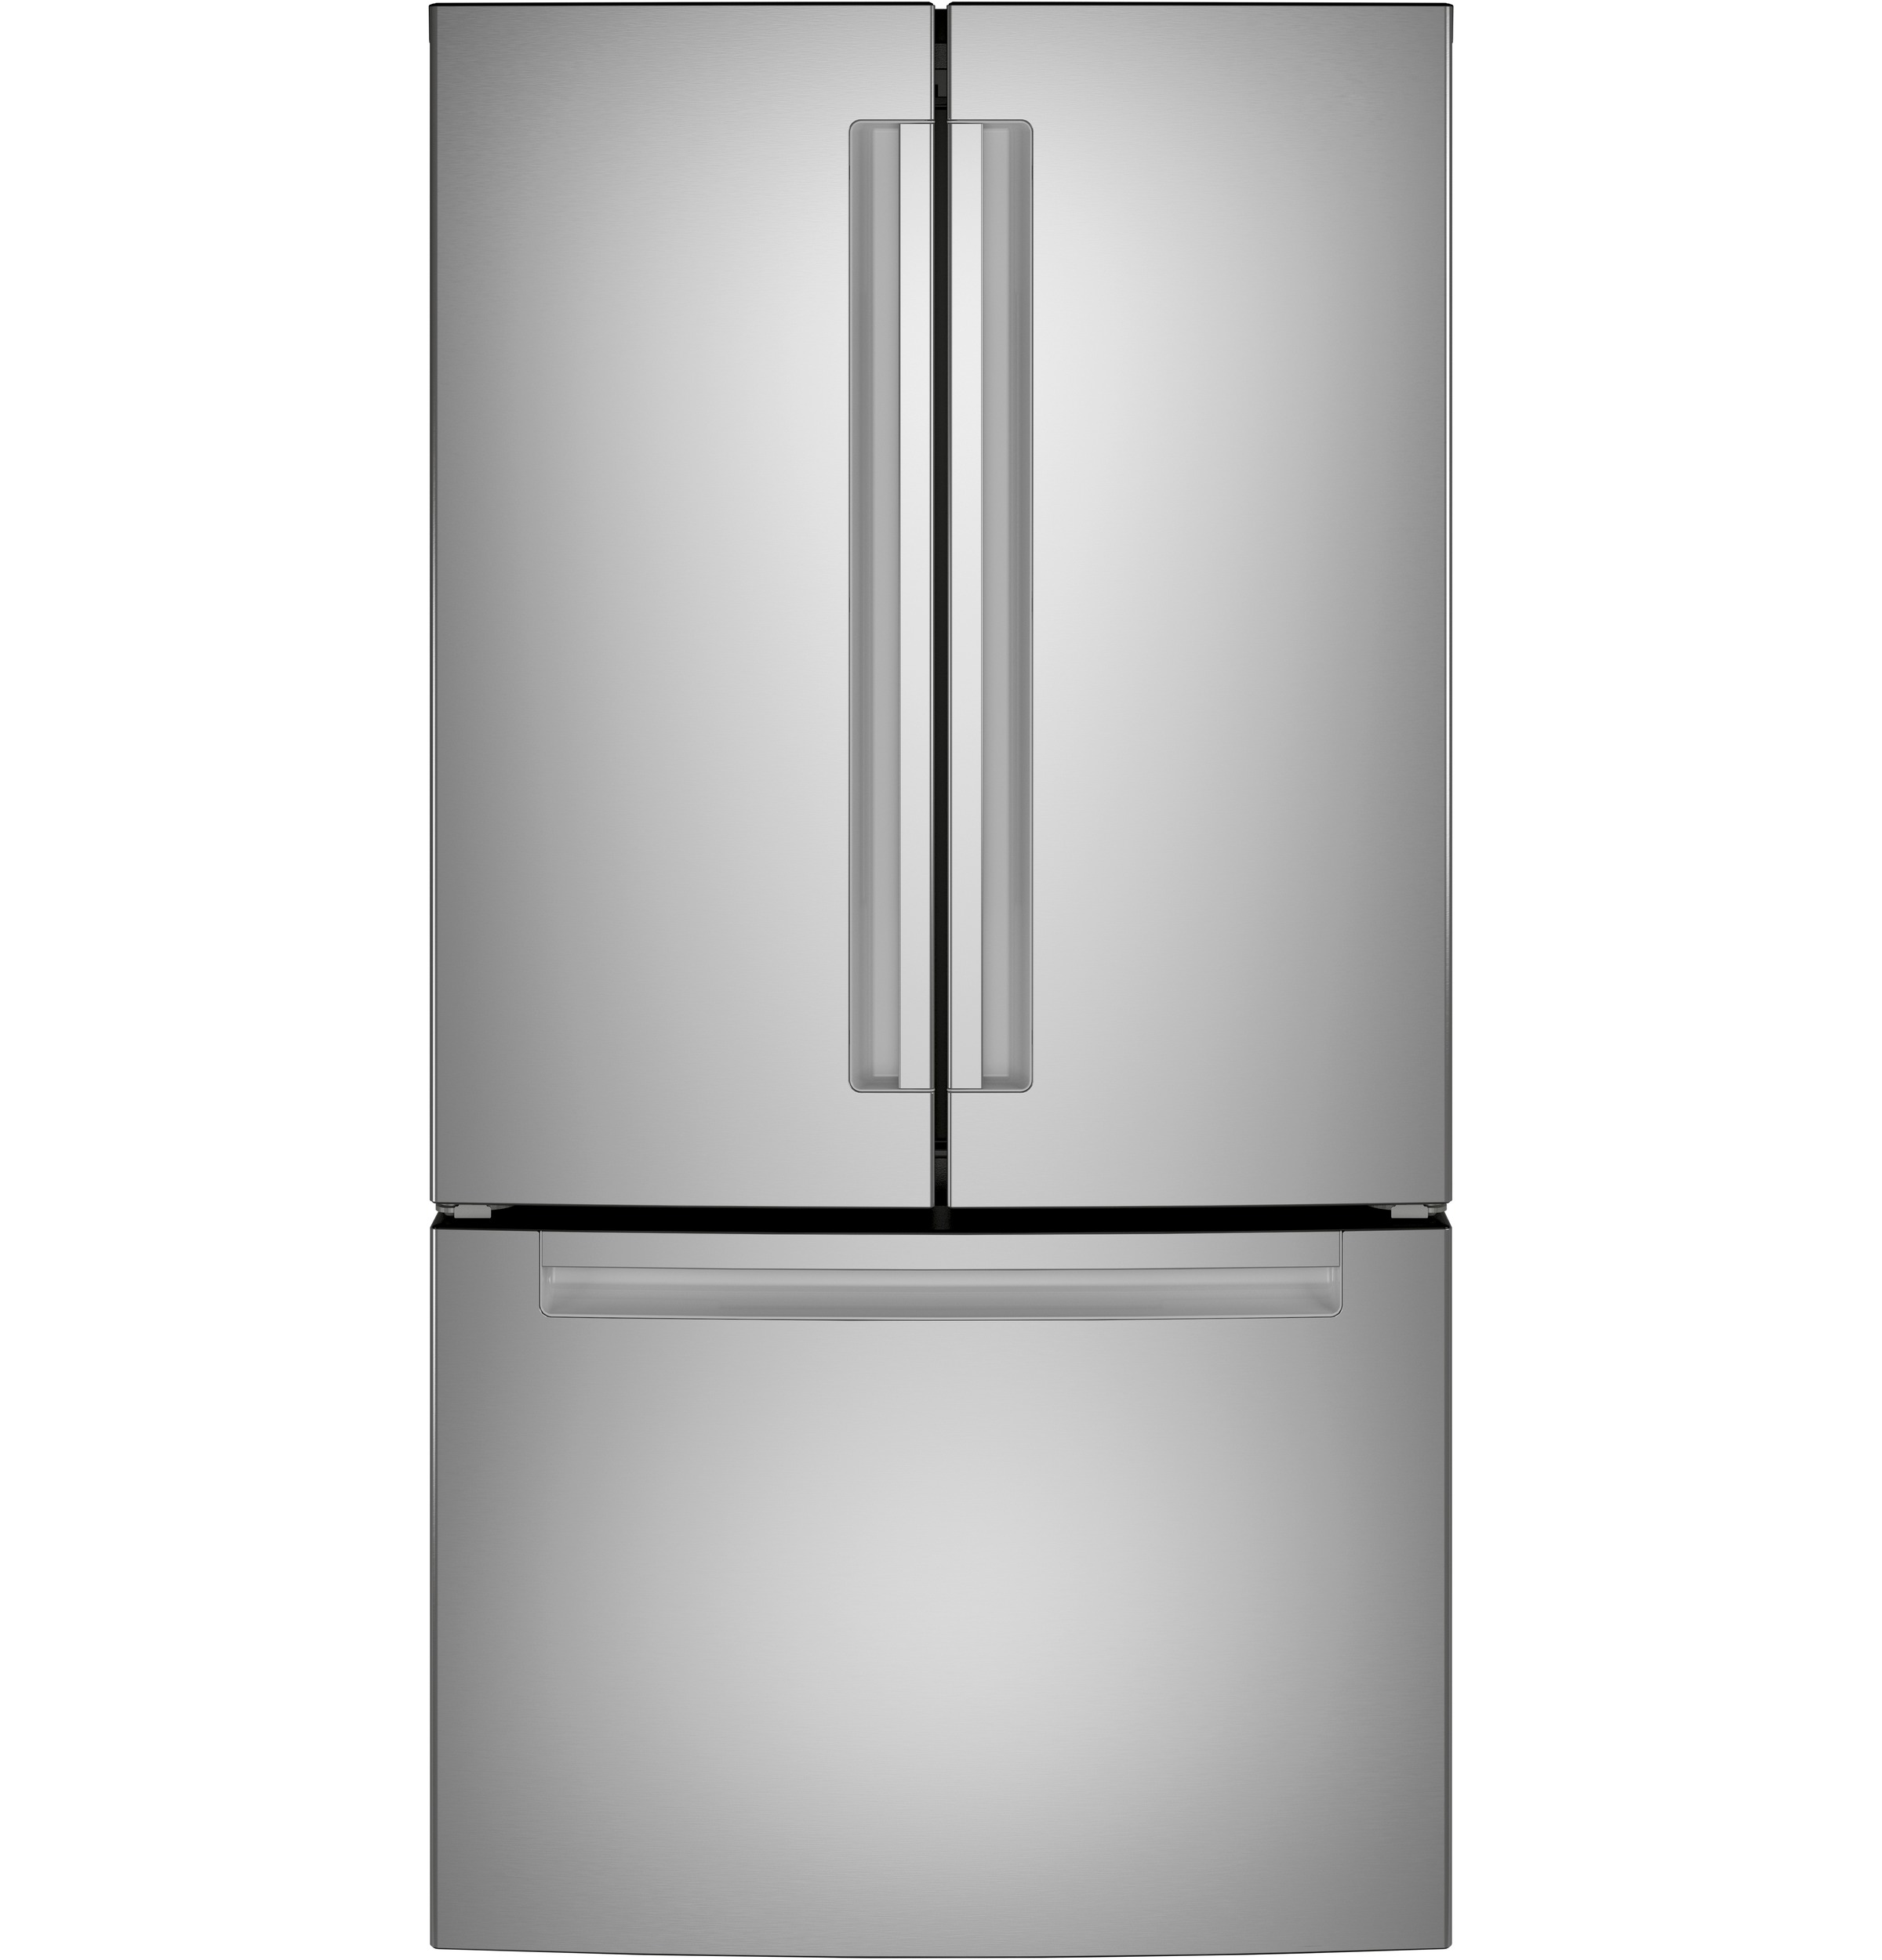 Haier ENERGY STAR® 27.0 Cu. Ft. Fingerprint Resistant French-Door Refrigerator